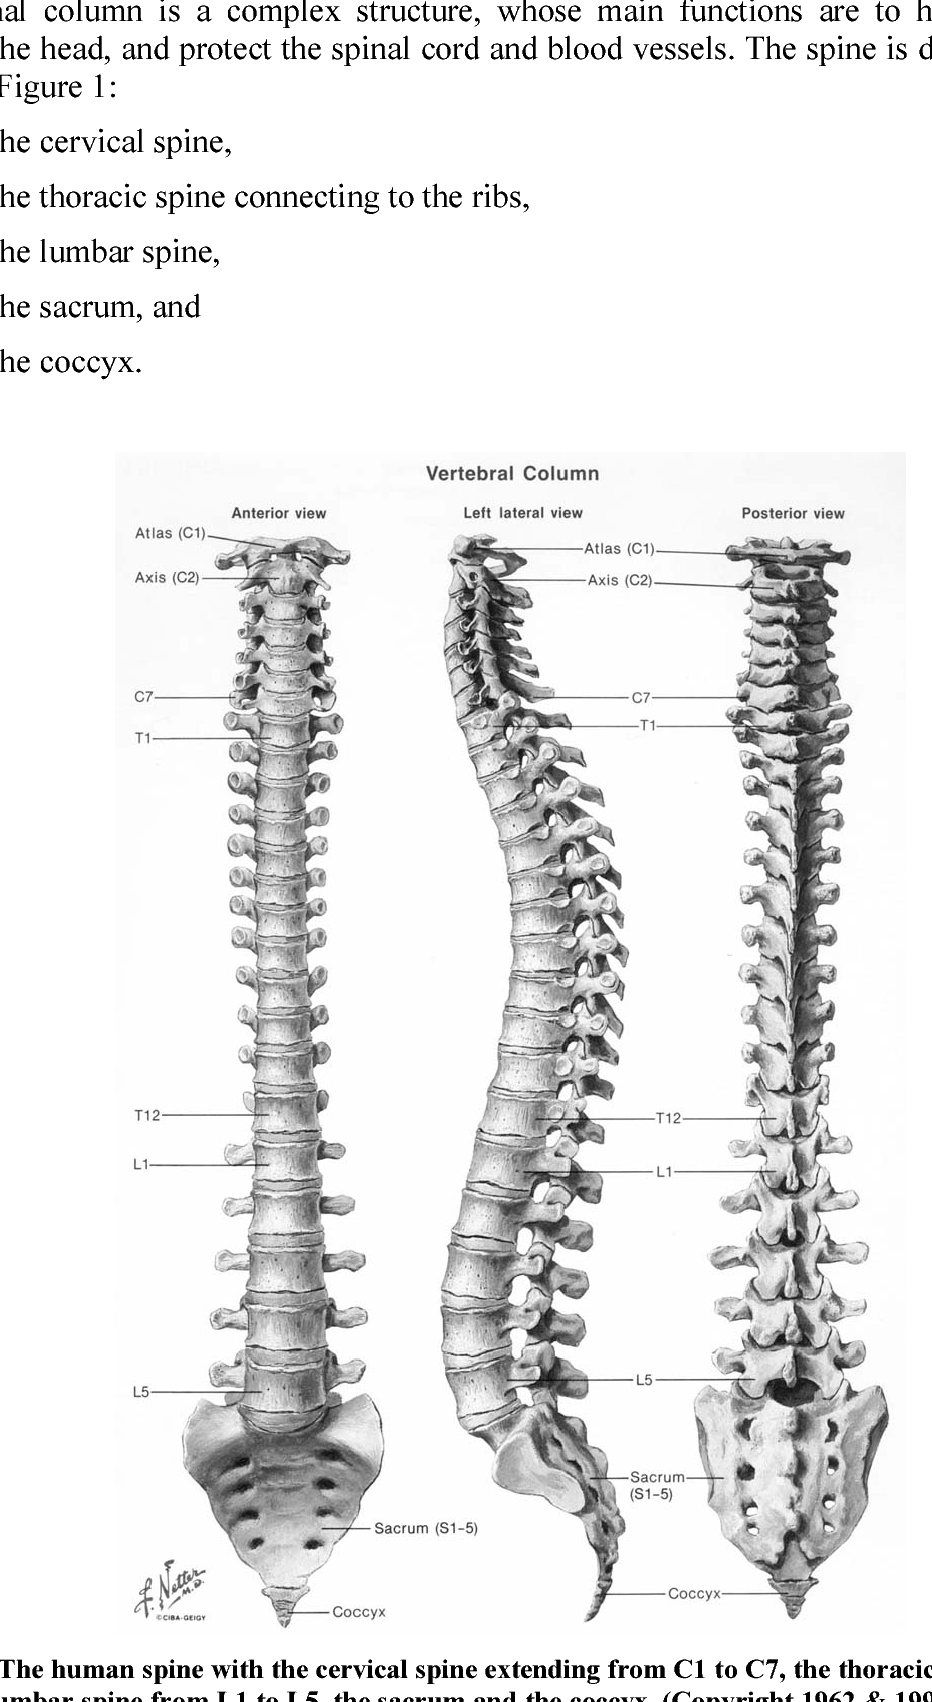 medium resolution of figure 1 the human spine with the cervical spine extending from c1 to c7